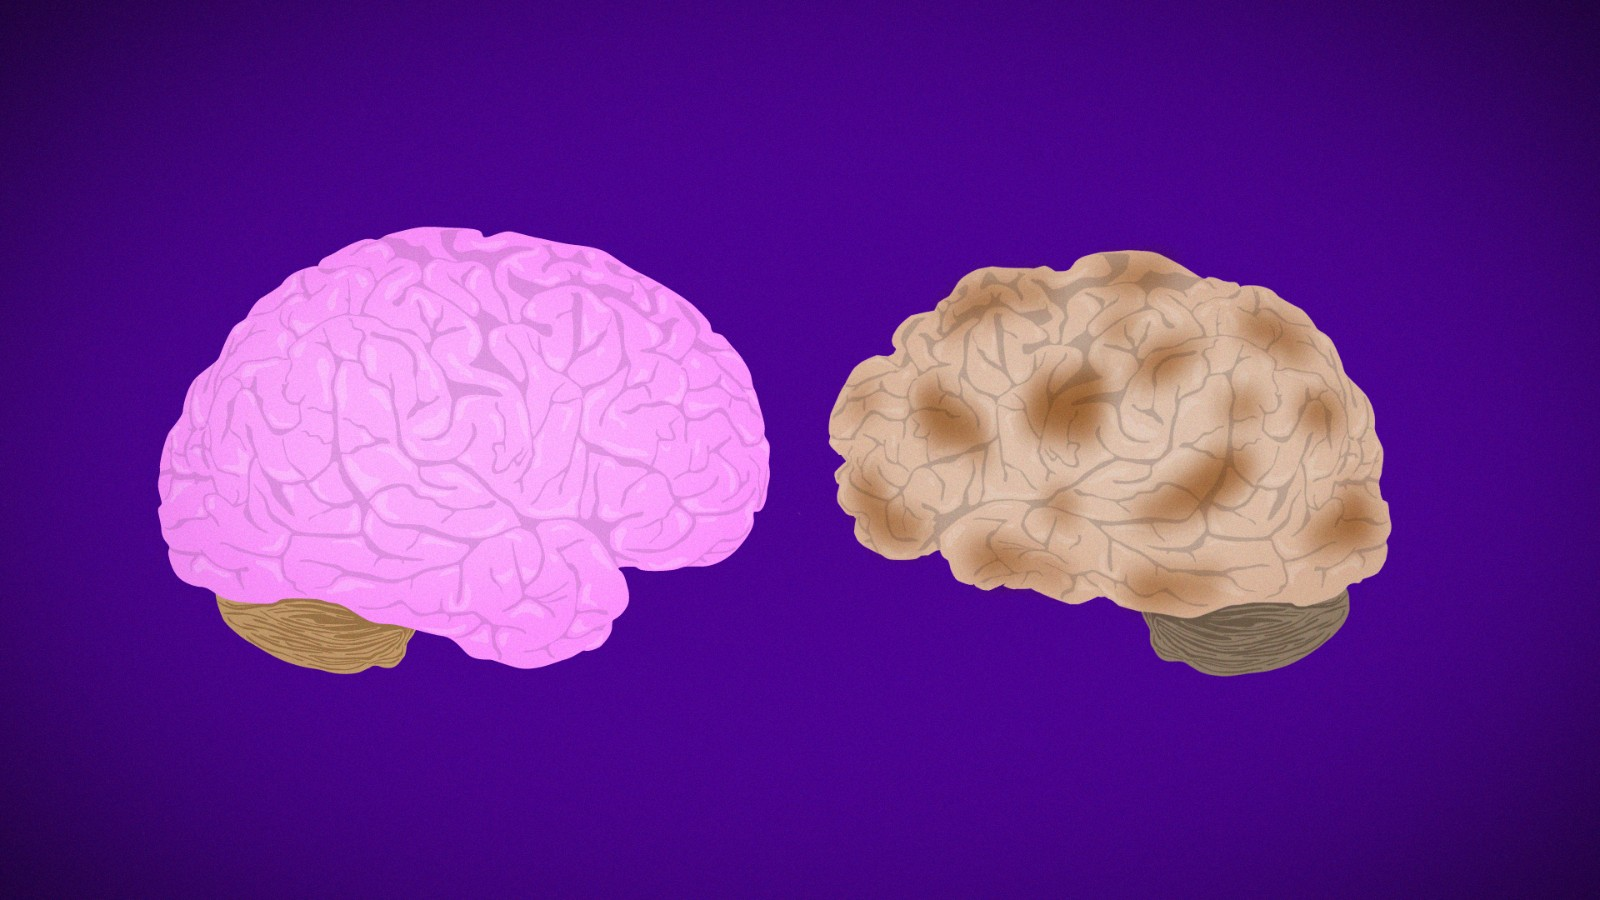 No, Alzheimer's is not contagious